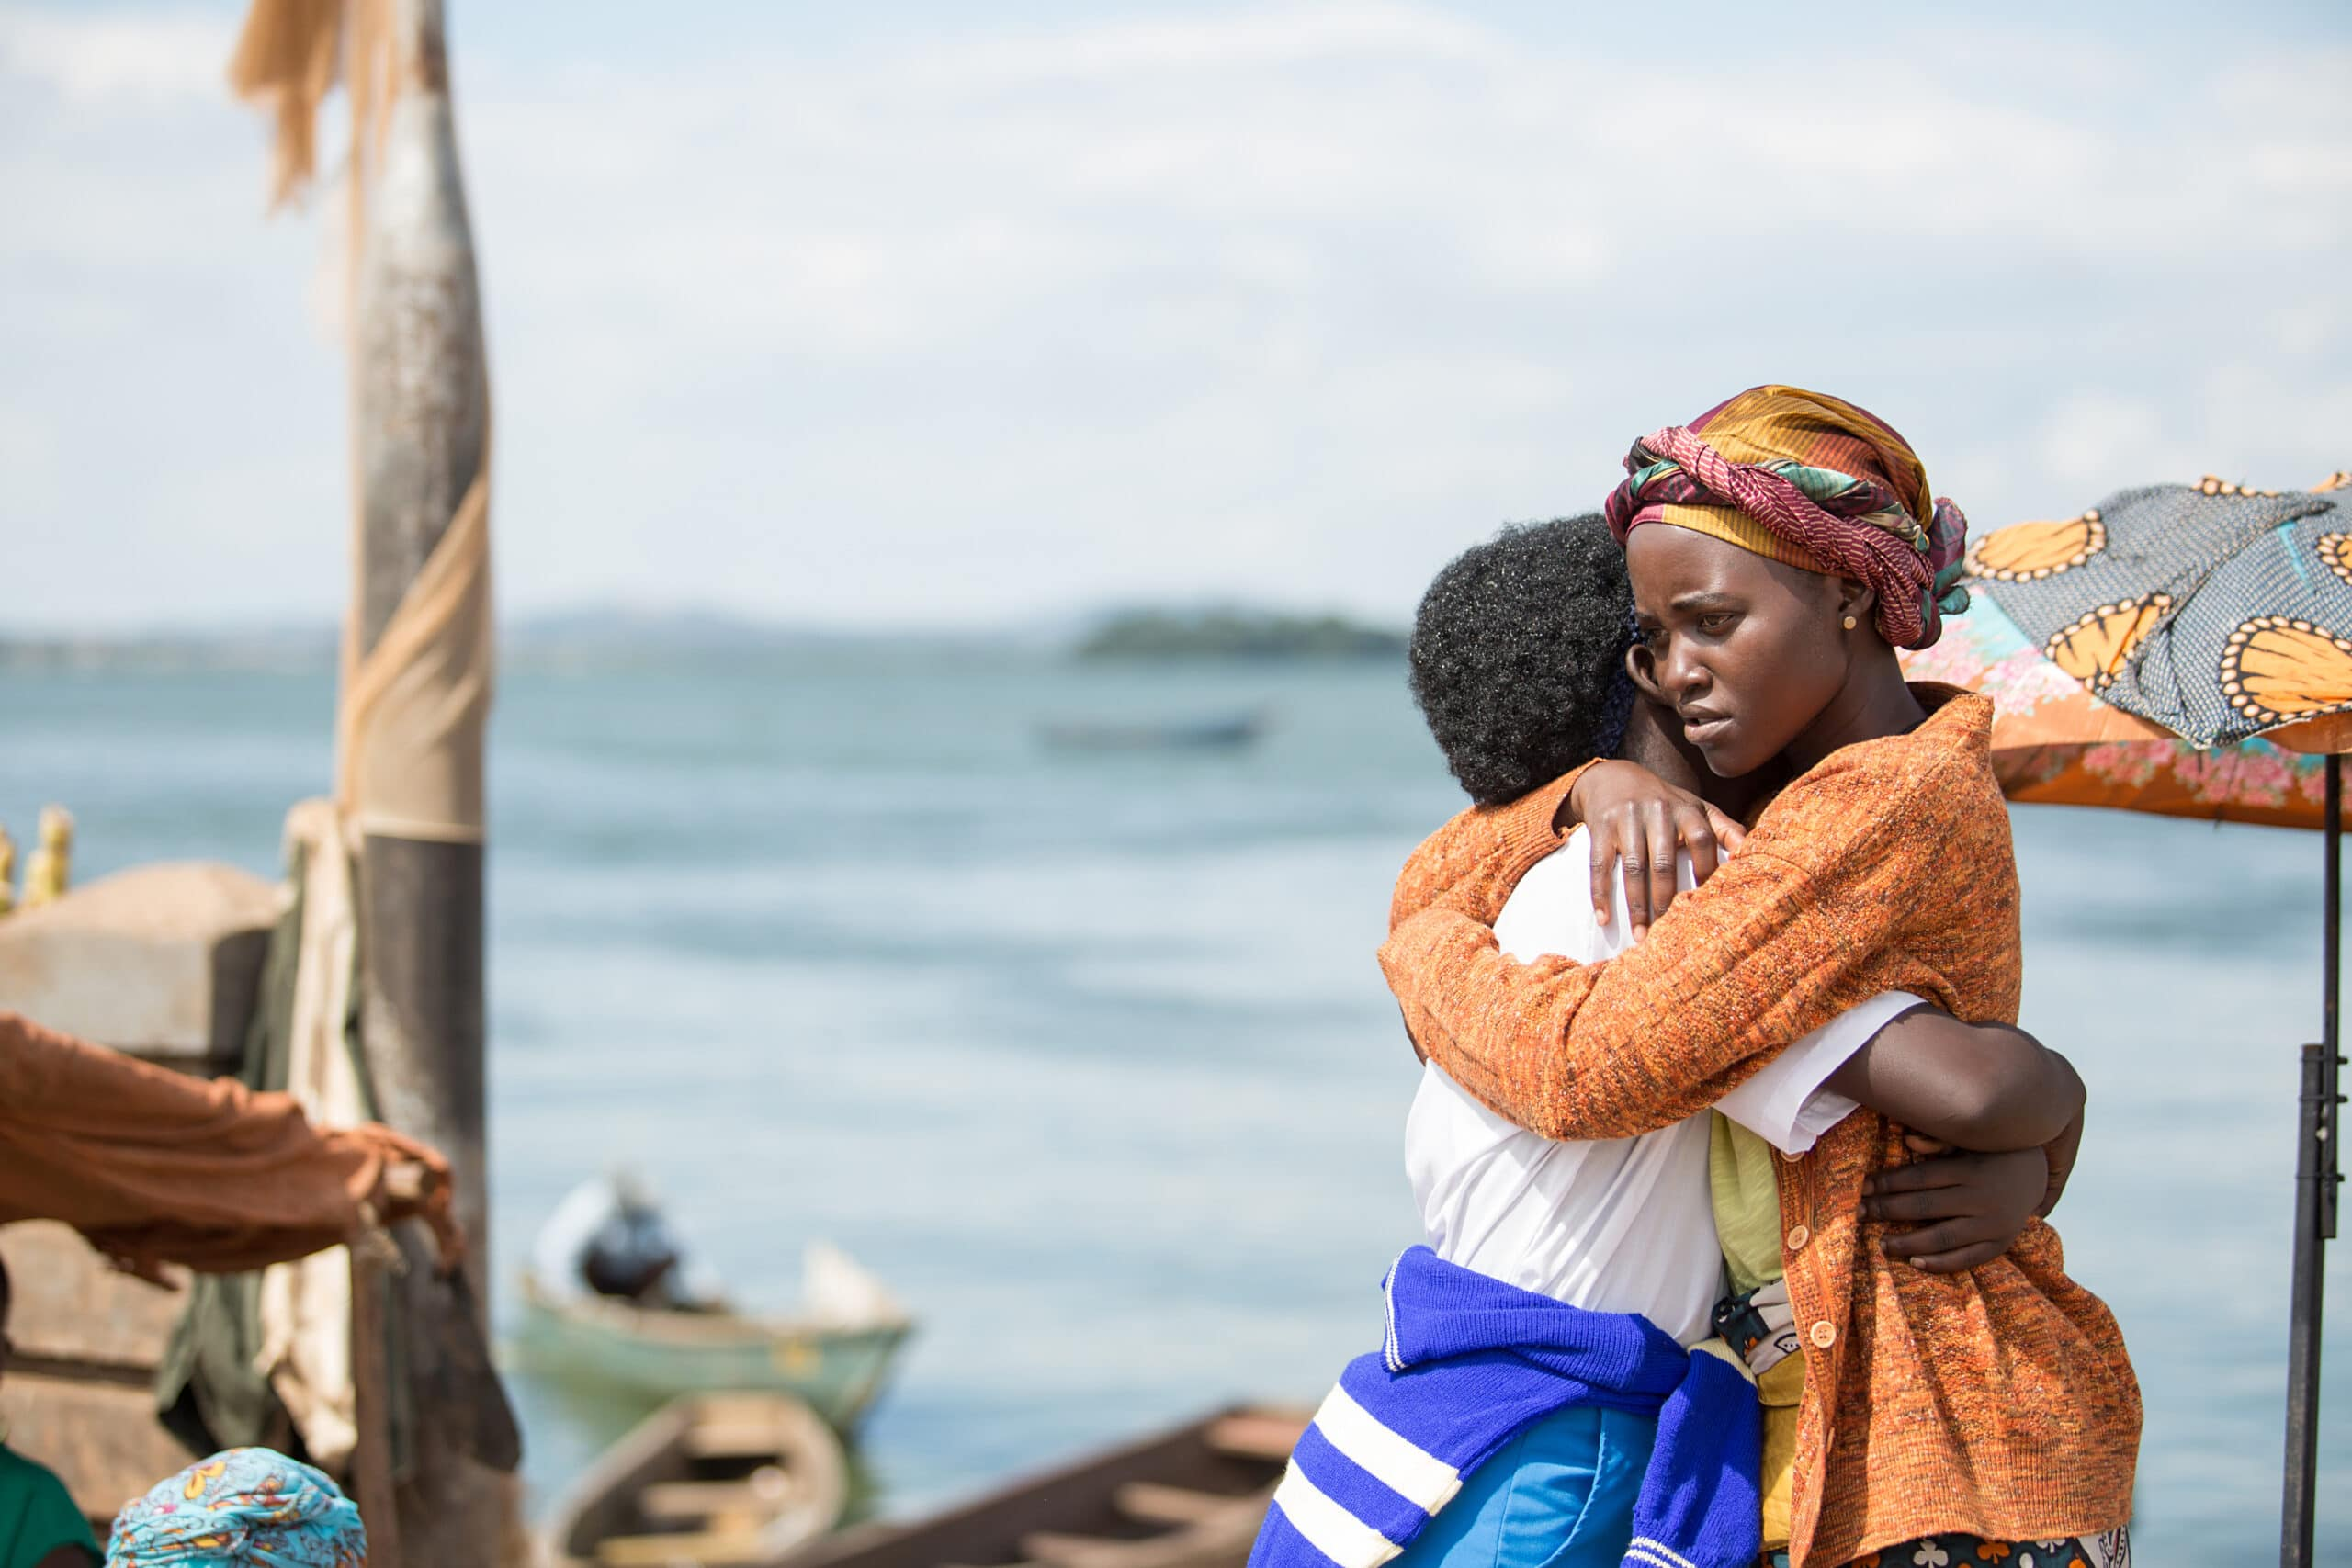 *NEW* Featurette Labor of Love – Disney's Queen of Katwe